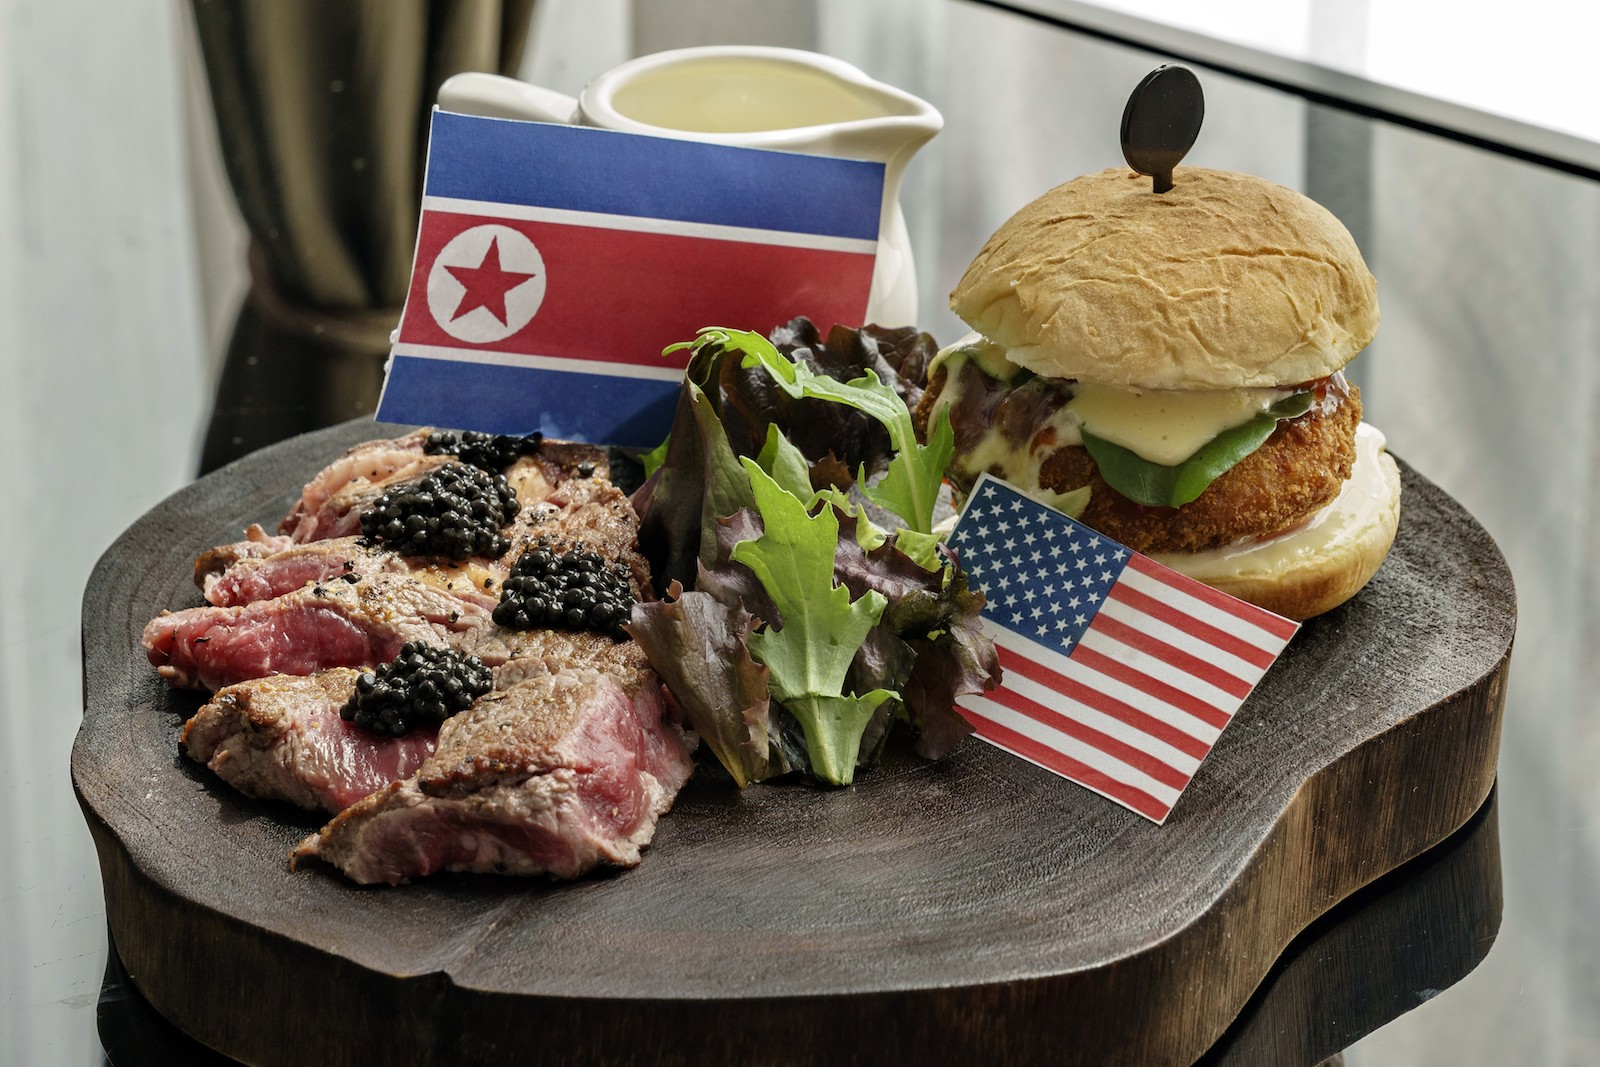 SINGAPORE-US-NKOREA-DIPLOMACY-FOOD